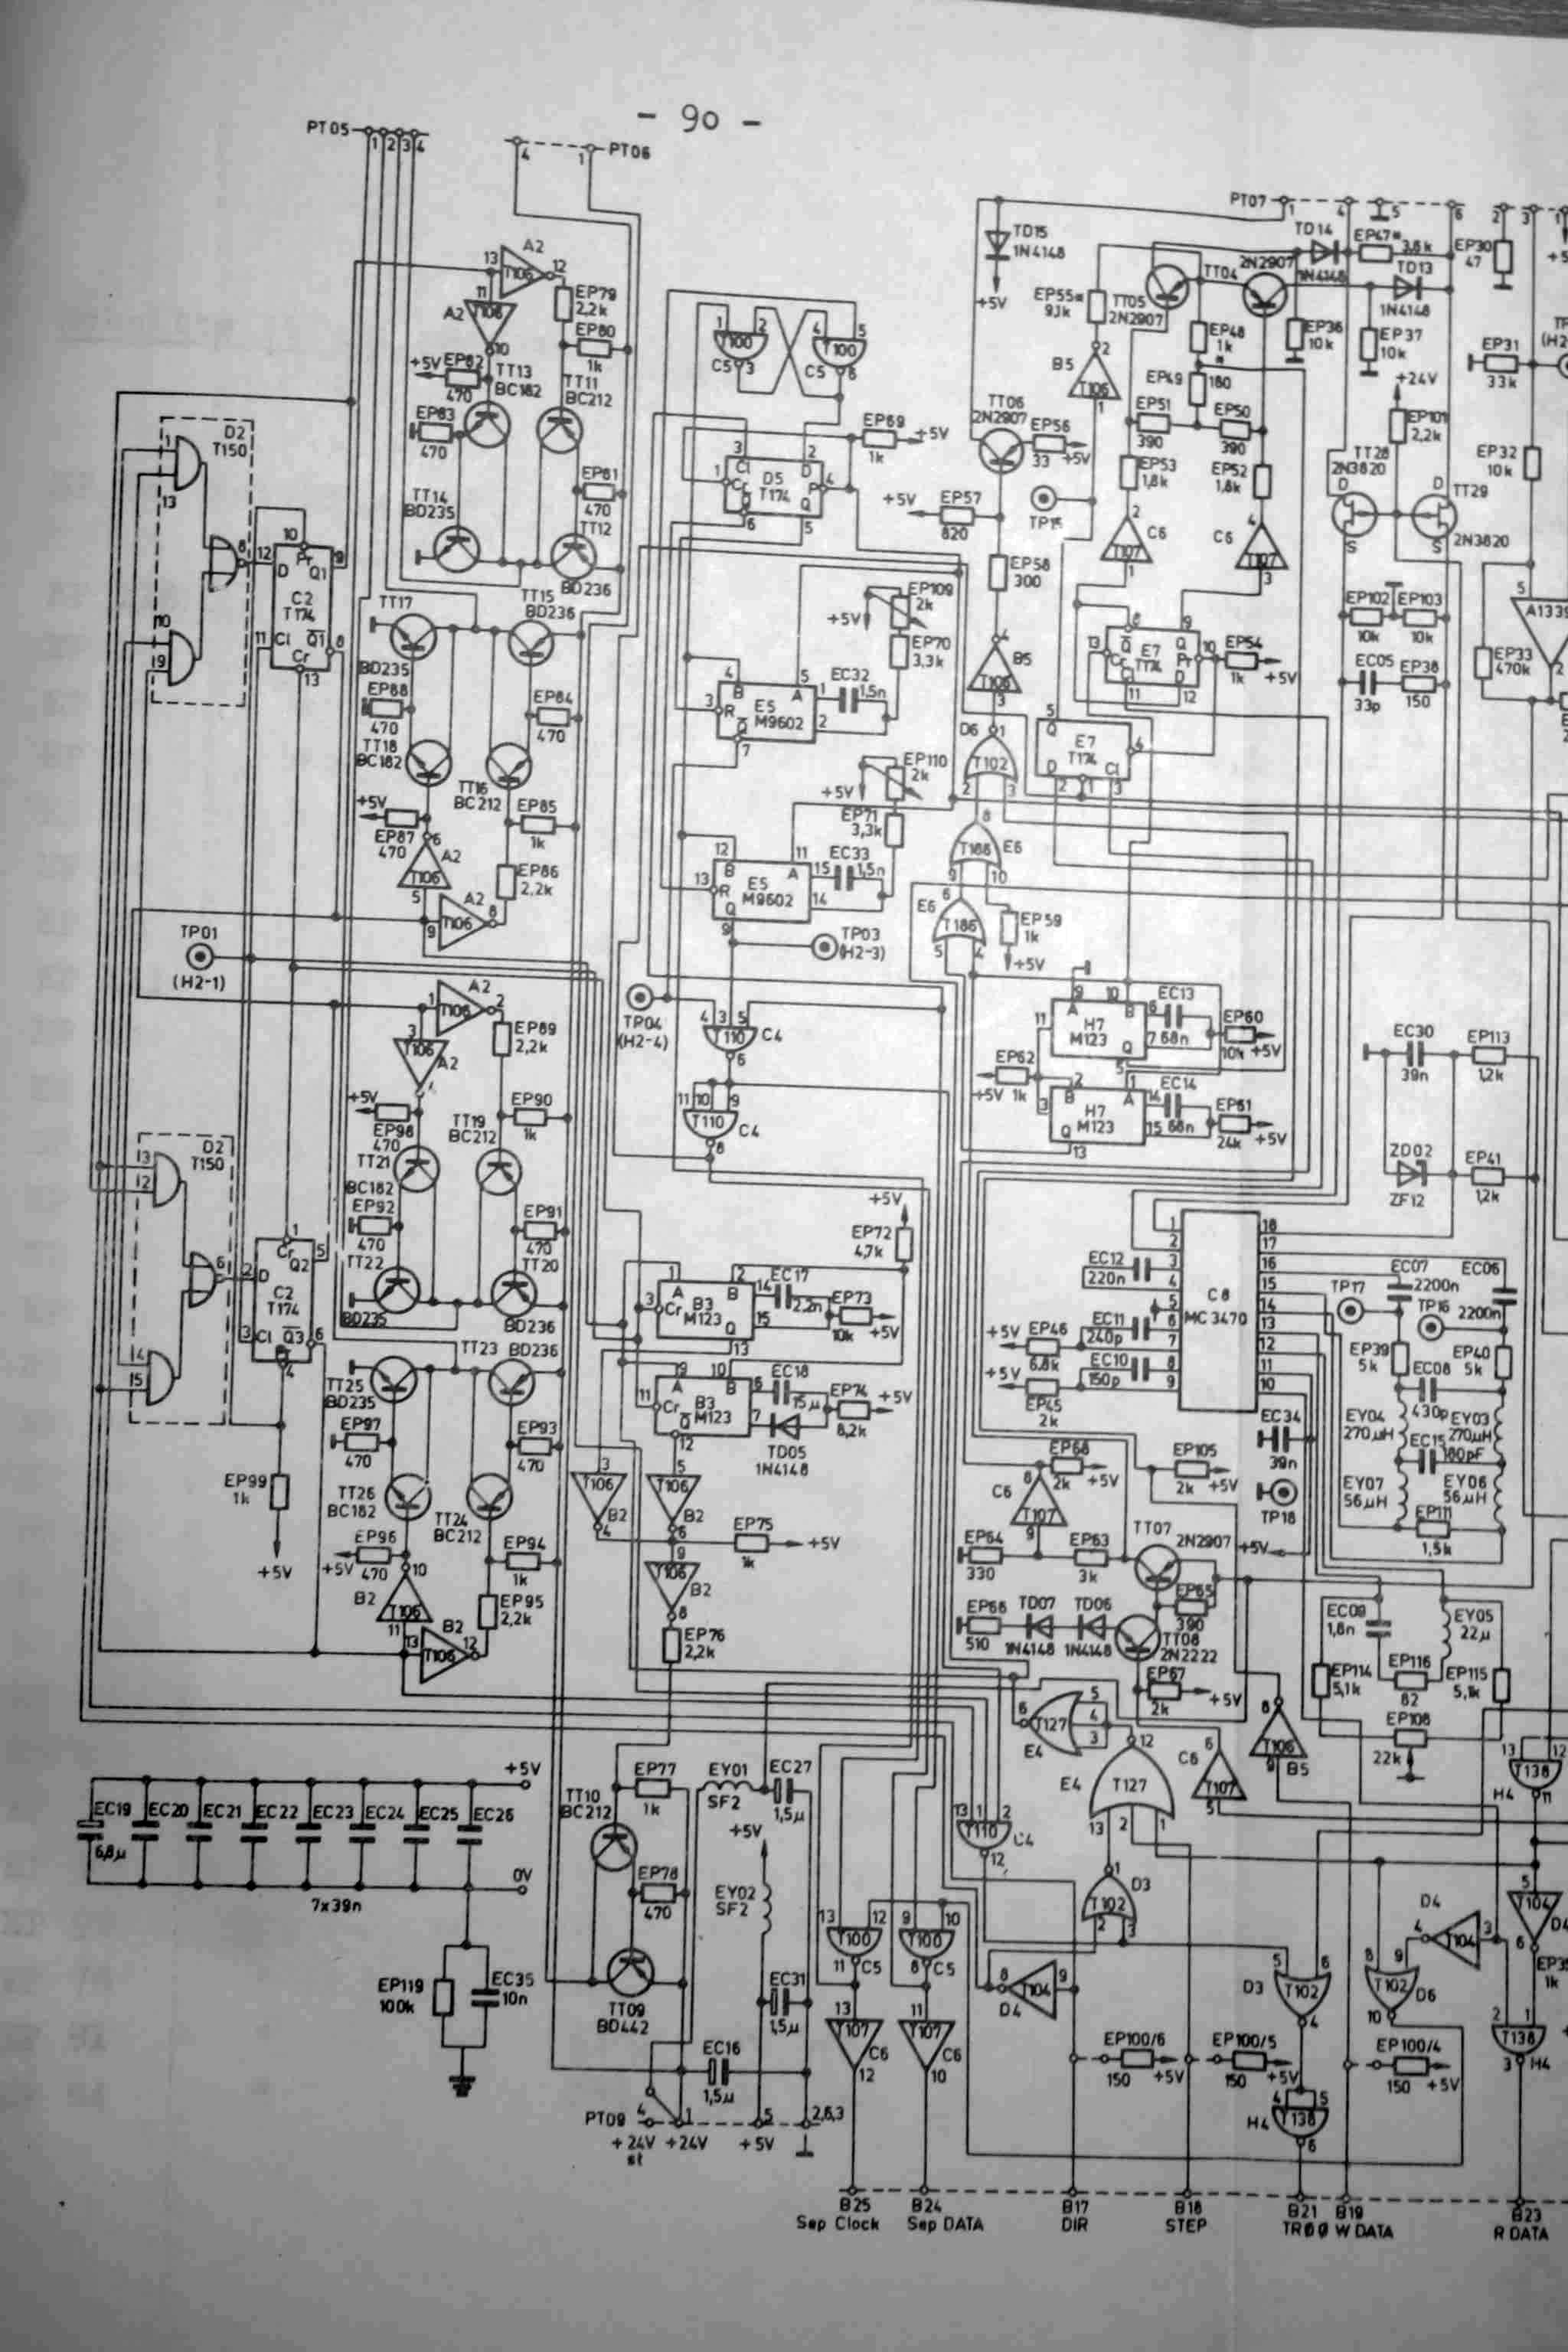 New Circuits Page 168 Lm339 Lm339n This Circuit Uses Two Comparator Pairs From An Schgma Zapojeng Levg Strana Diagram Left Side